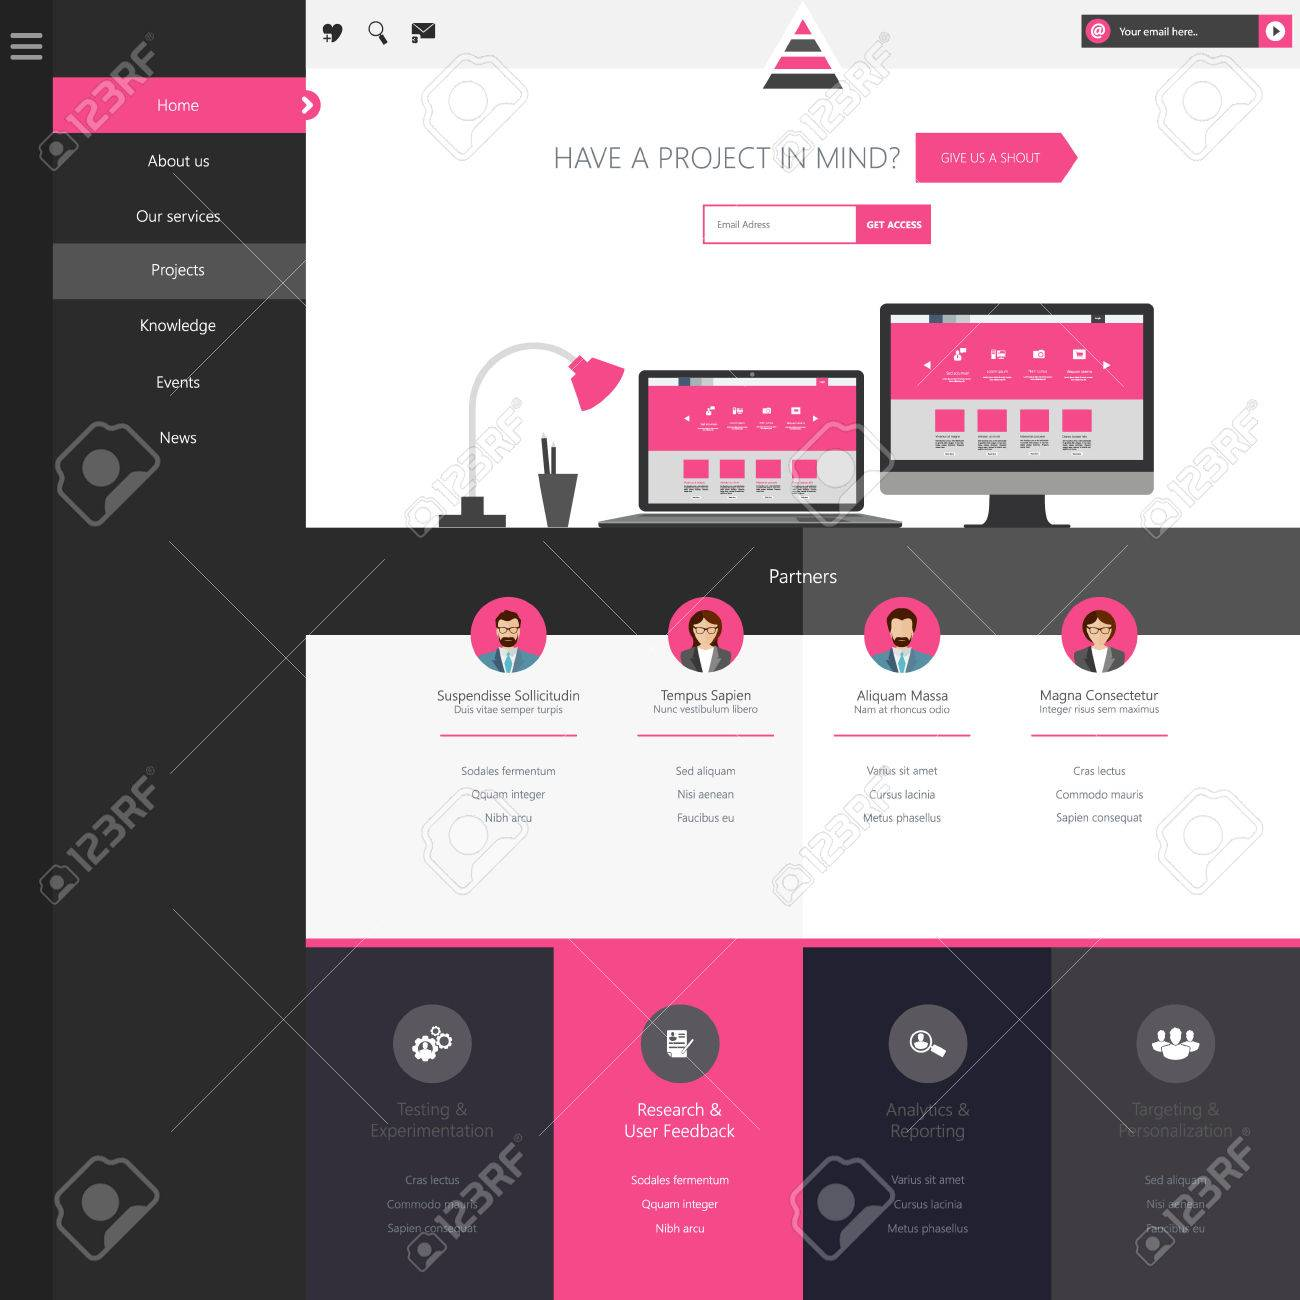 15 free bootstrap landing pages templates.